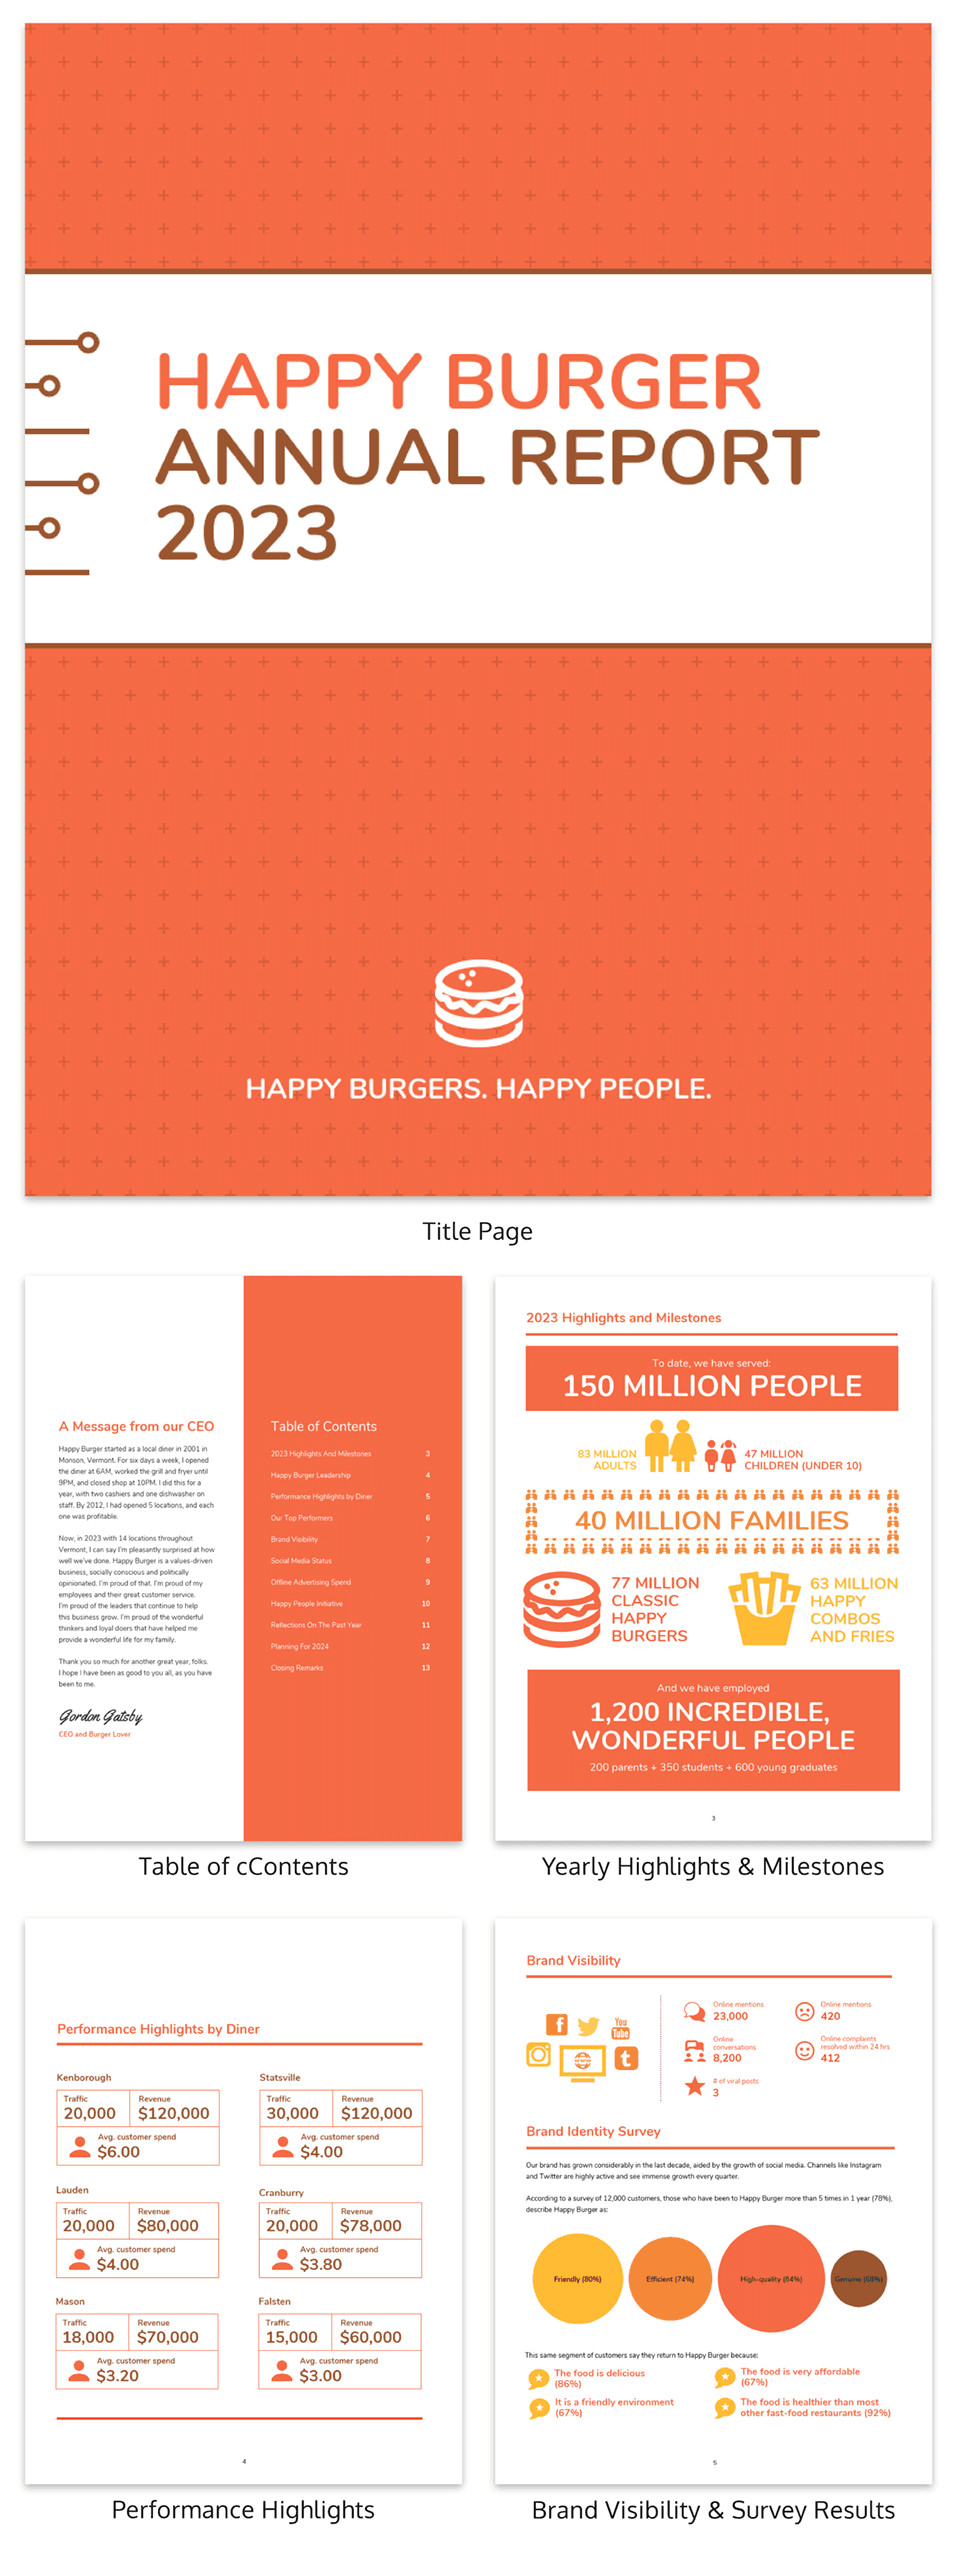 Annual Report Design Templates 50 Customizable Annual Report Design Templates Examples